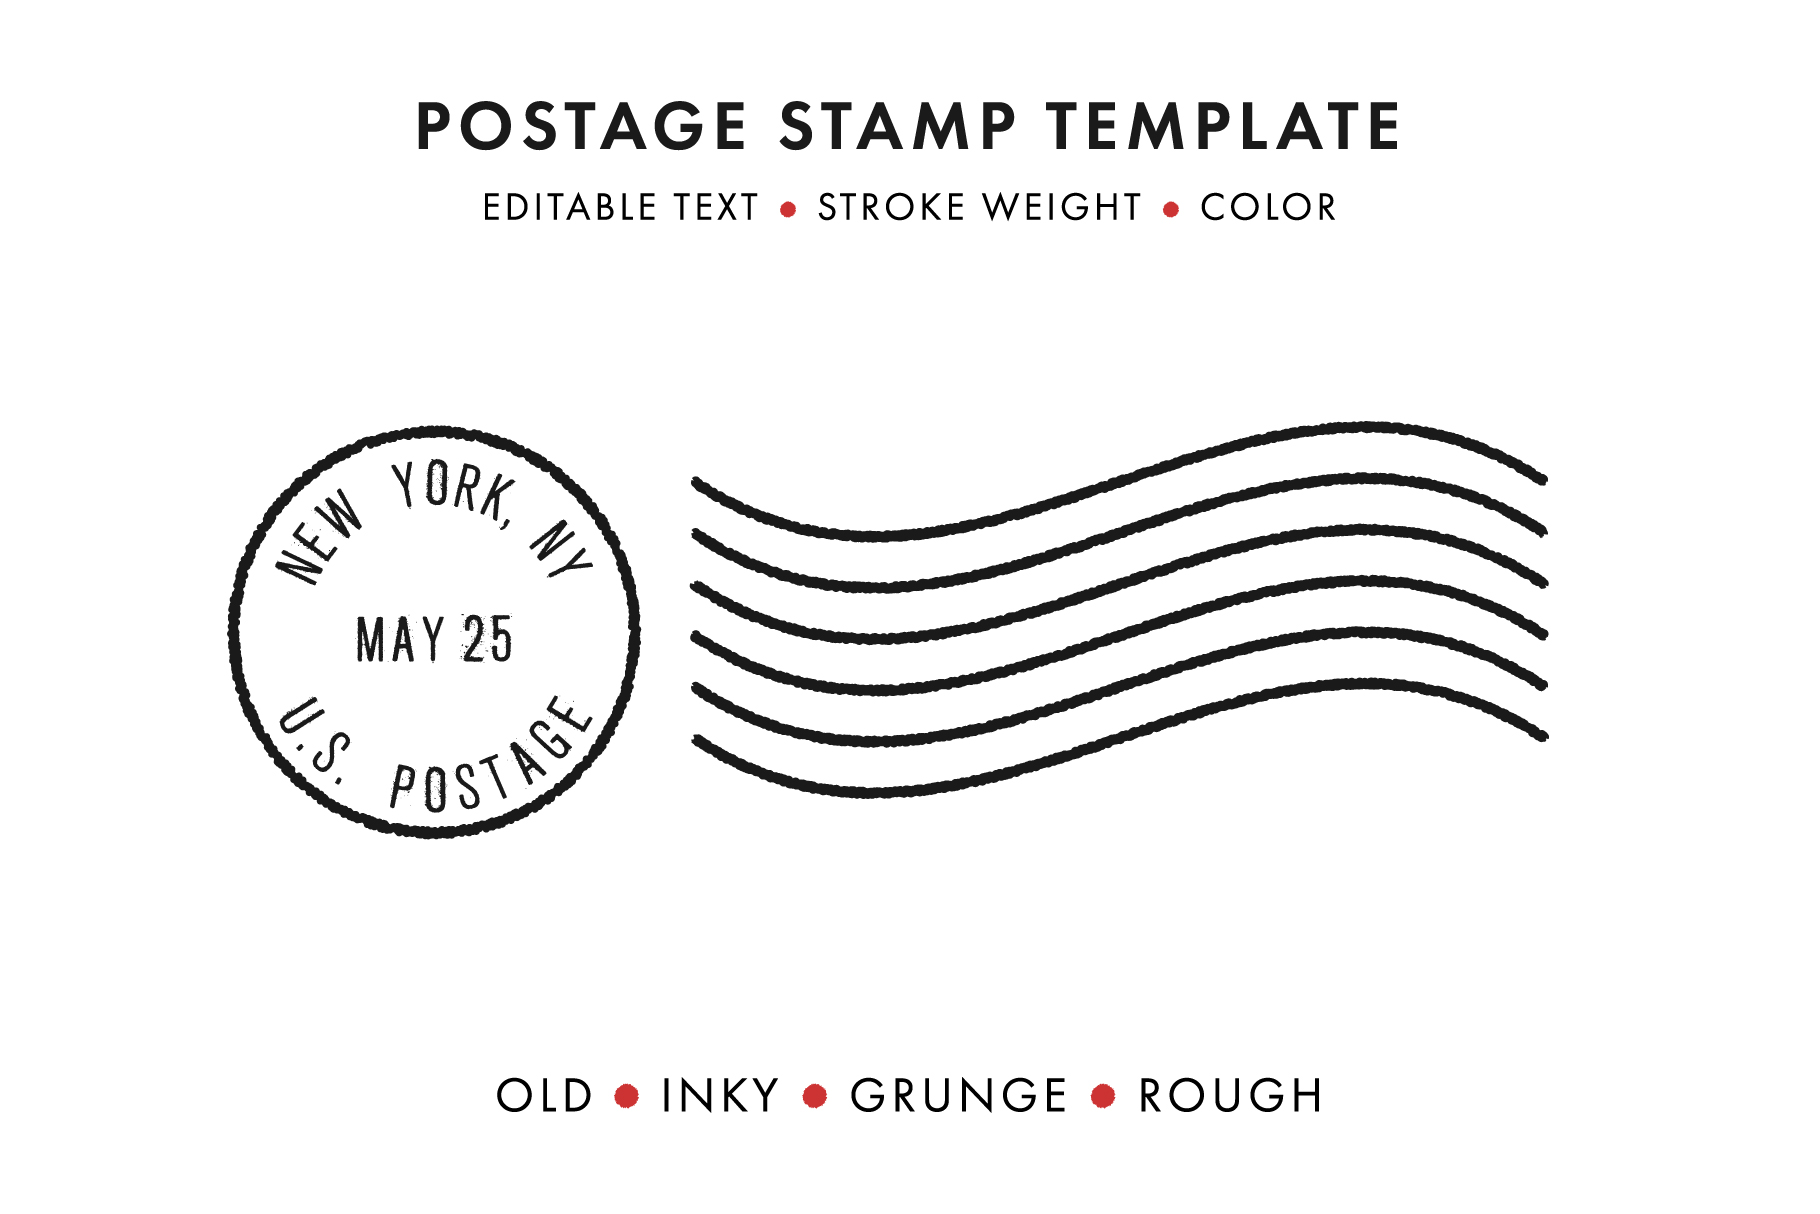 postage-stamp-inky  Th Of July Letter Template on teacher appreciation day templates, halloween templates, health templates, may day templates, fashion templates, turkey day templates, st. patricks day templates, games templates, events templates, birthday templates, history templates, camping templates, president's day templates, hanukkah printable templates, contest templates, books templates, picnic templates, wedding templates, 4th pf july, pizza templates,